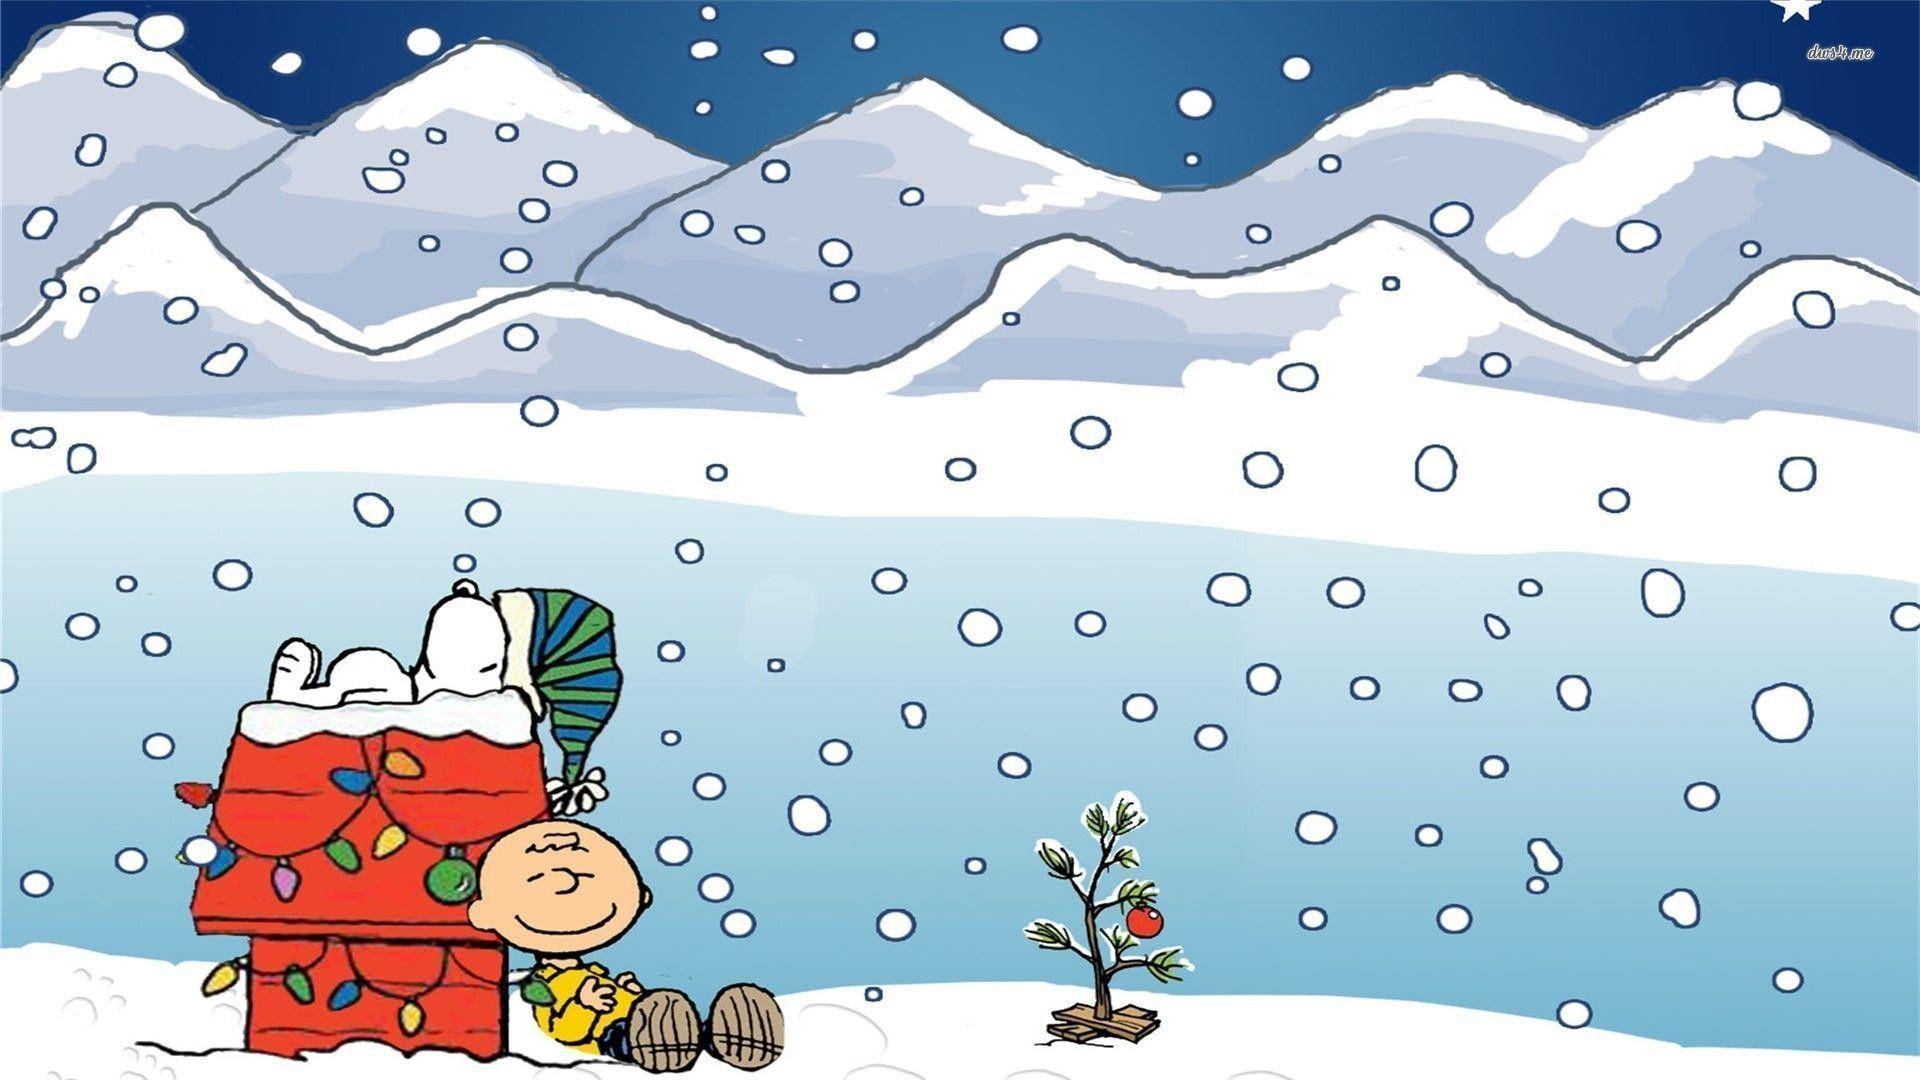 1920x1080 wallpapers for charlie brown snoopy christmas wallpaper - Snoopy Christmas